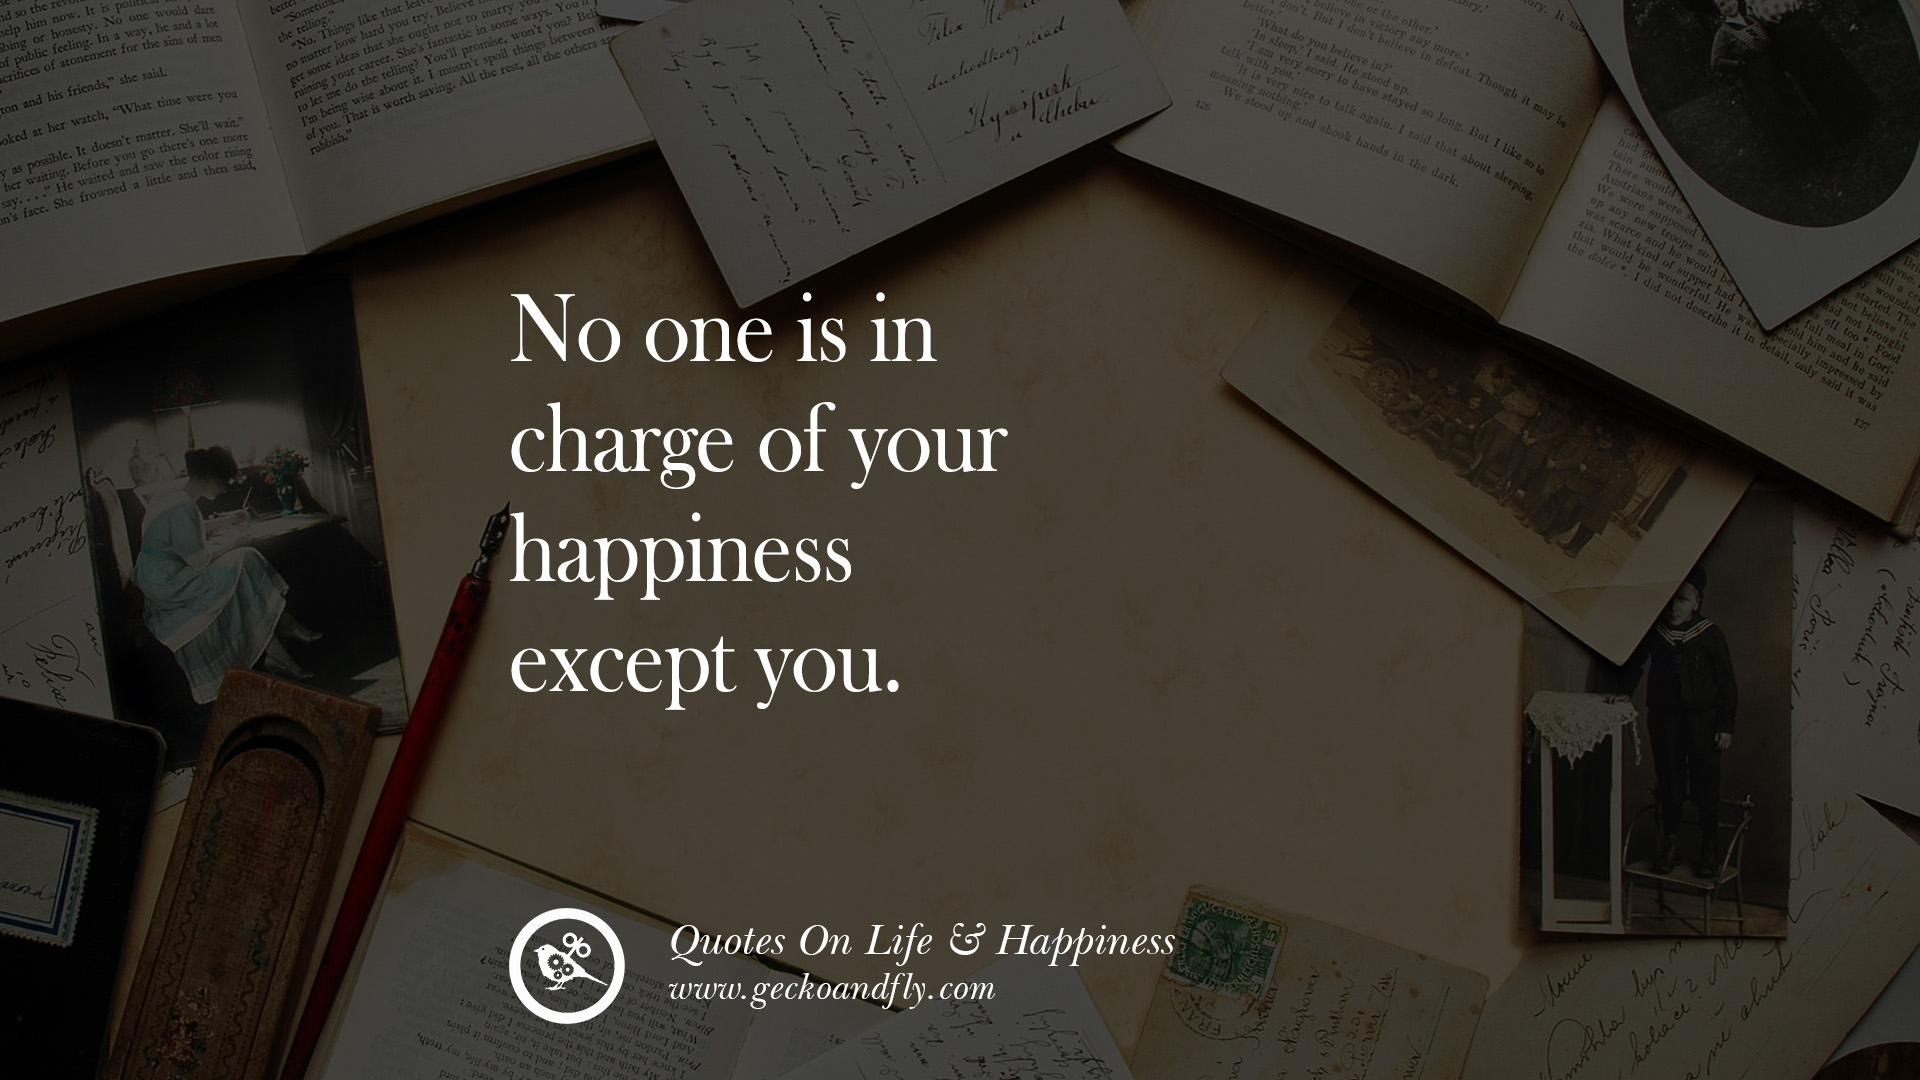 16 Uplifting Quotes About Being Happy With Life Love Friends Family and Yourself